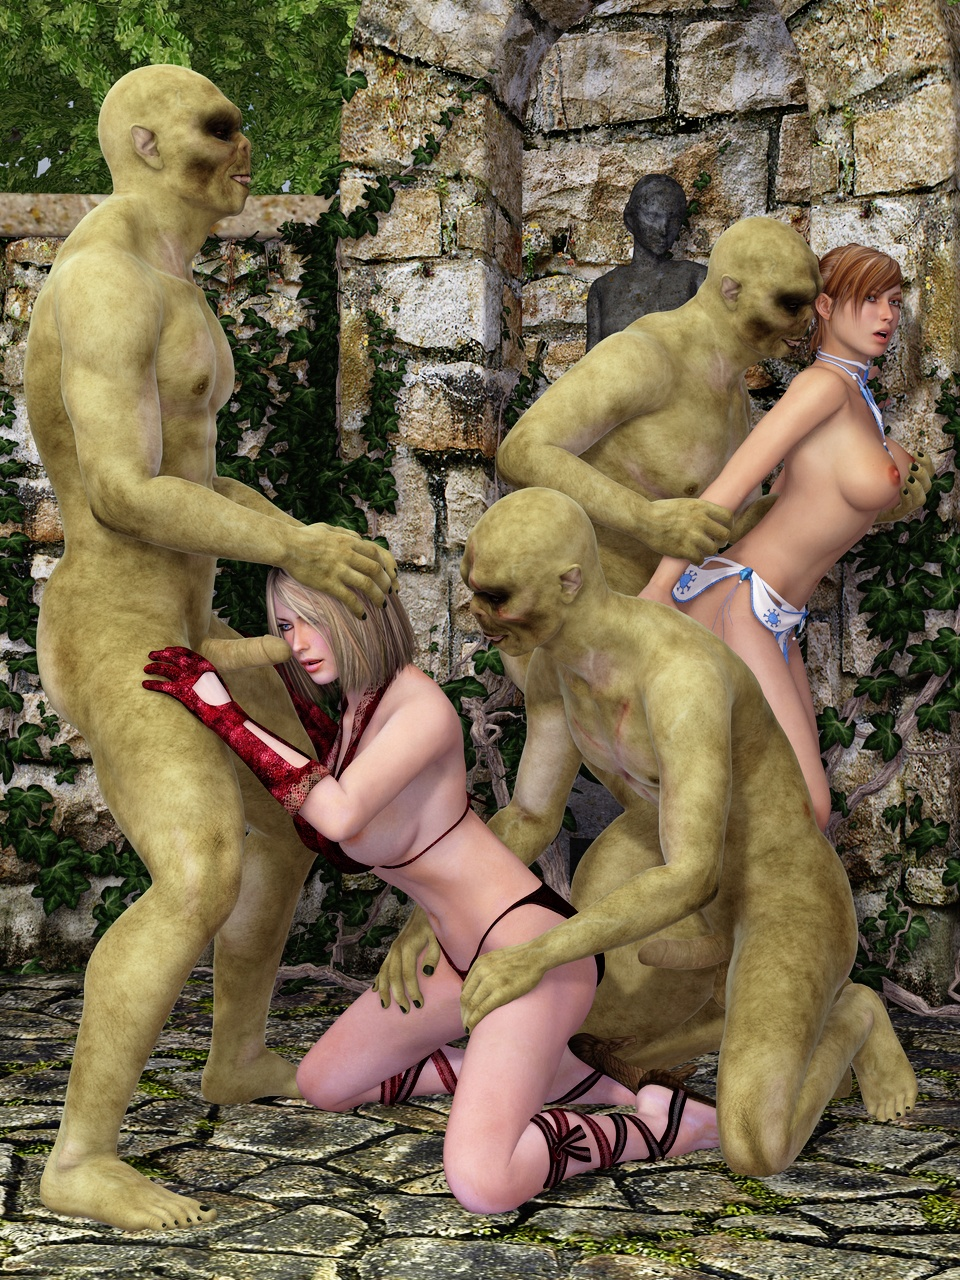 Elf's nude World of Porncraft nude thumbs